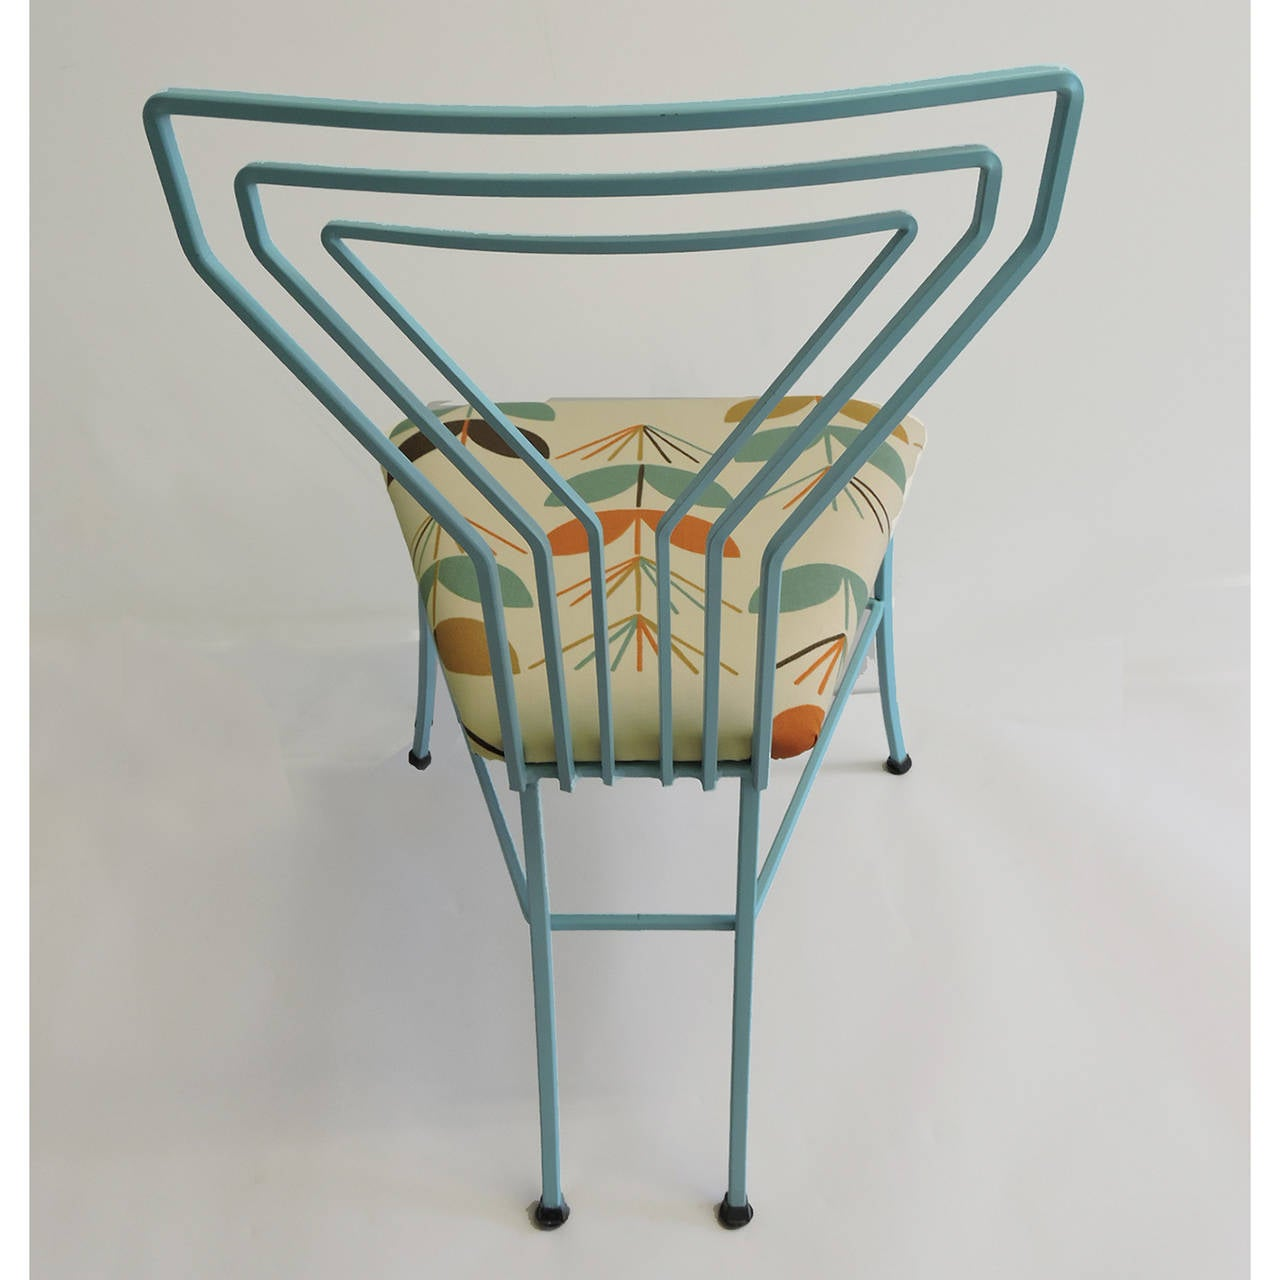 id f wrought iron kitchen chairs Pair of Modern Upholstered Seat Martini Glass Wrought Iron Kitchen Chairs 3